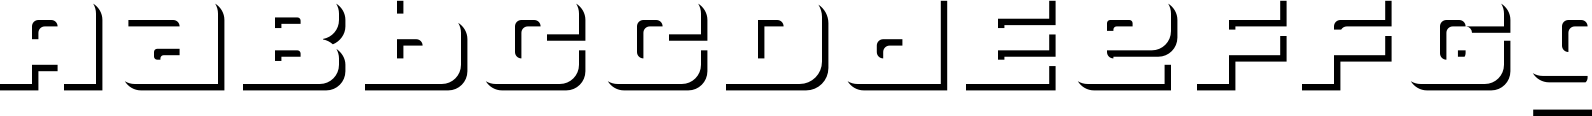 LECO 1988 Shadow Font